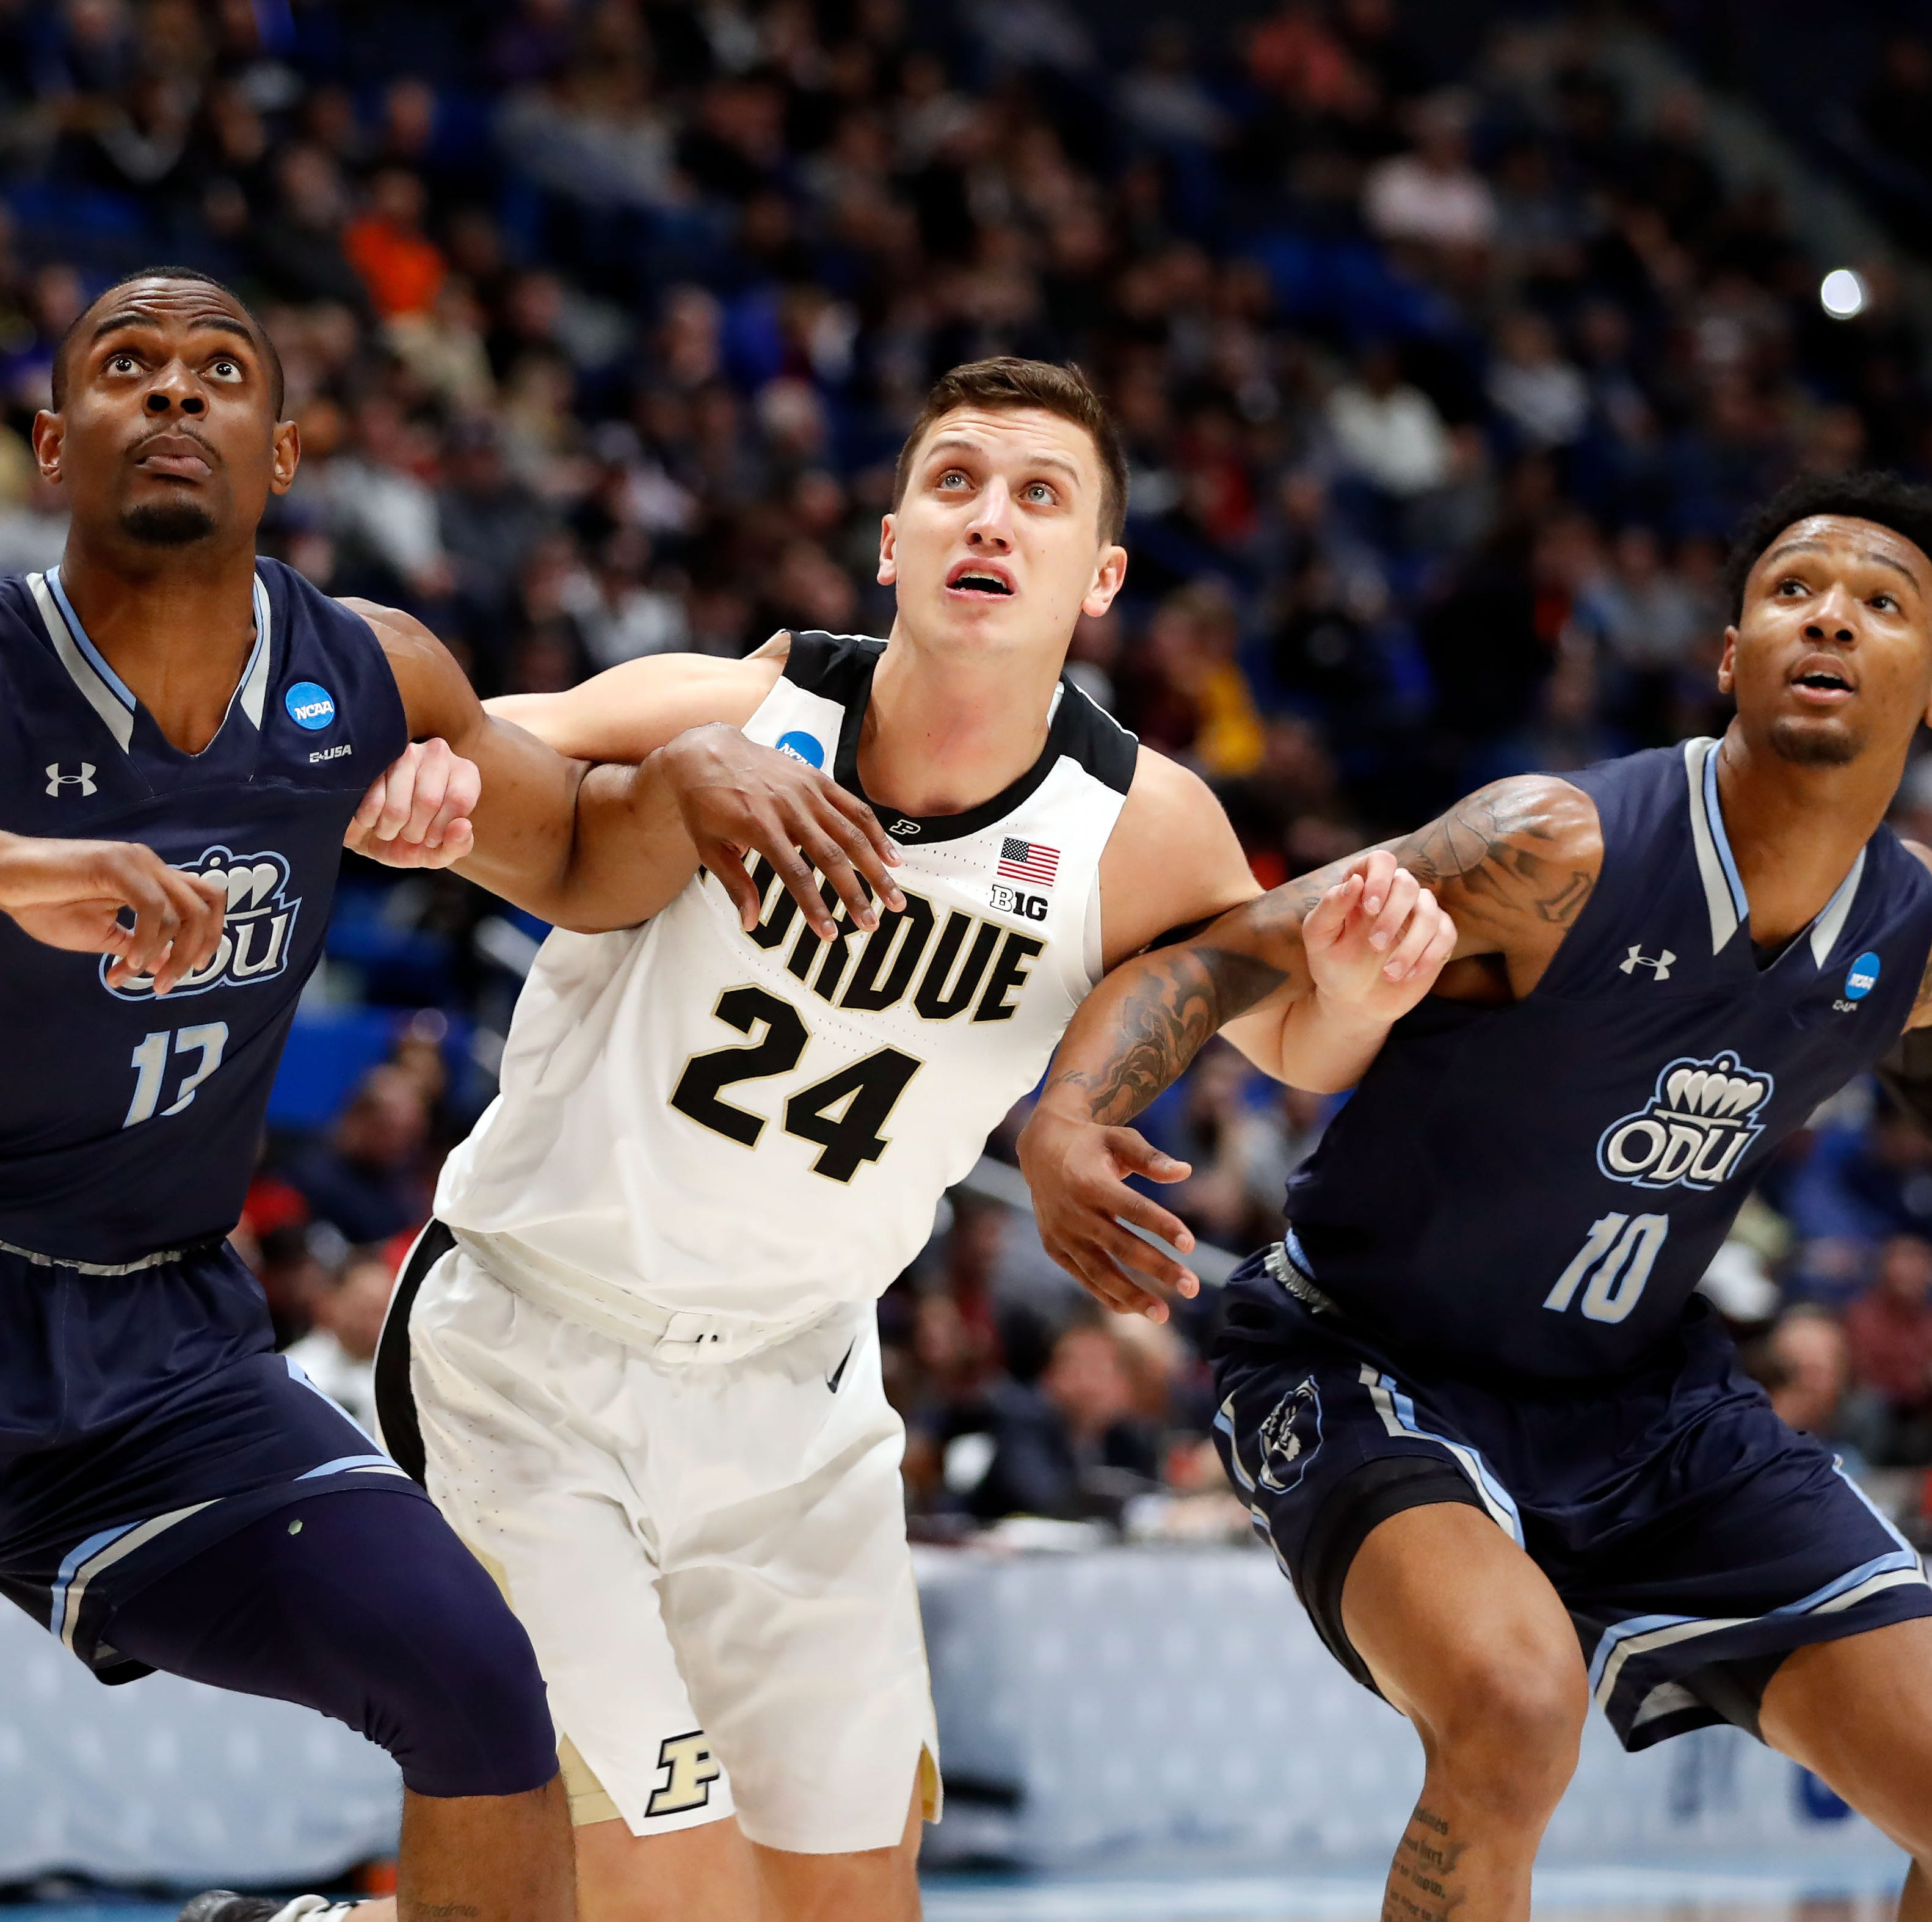 March Madness 2019: Scouting Purdue men's basketball vs. Villanova